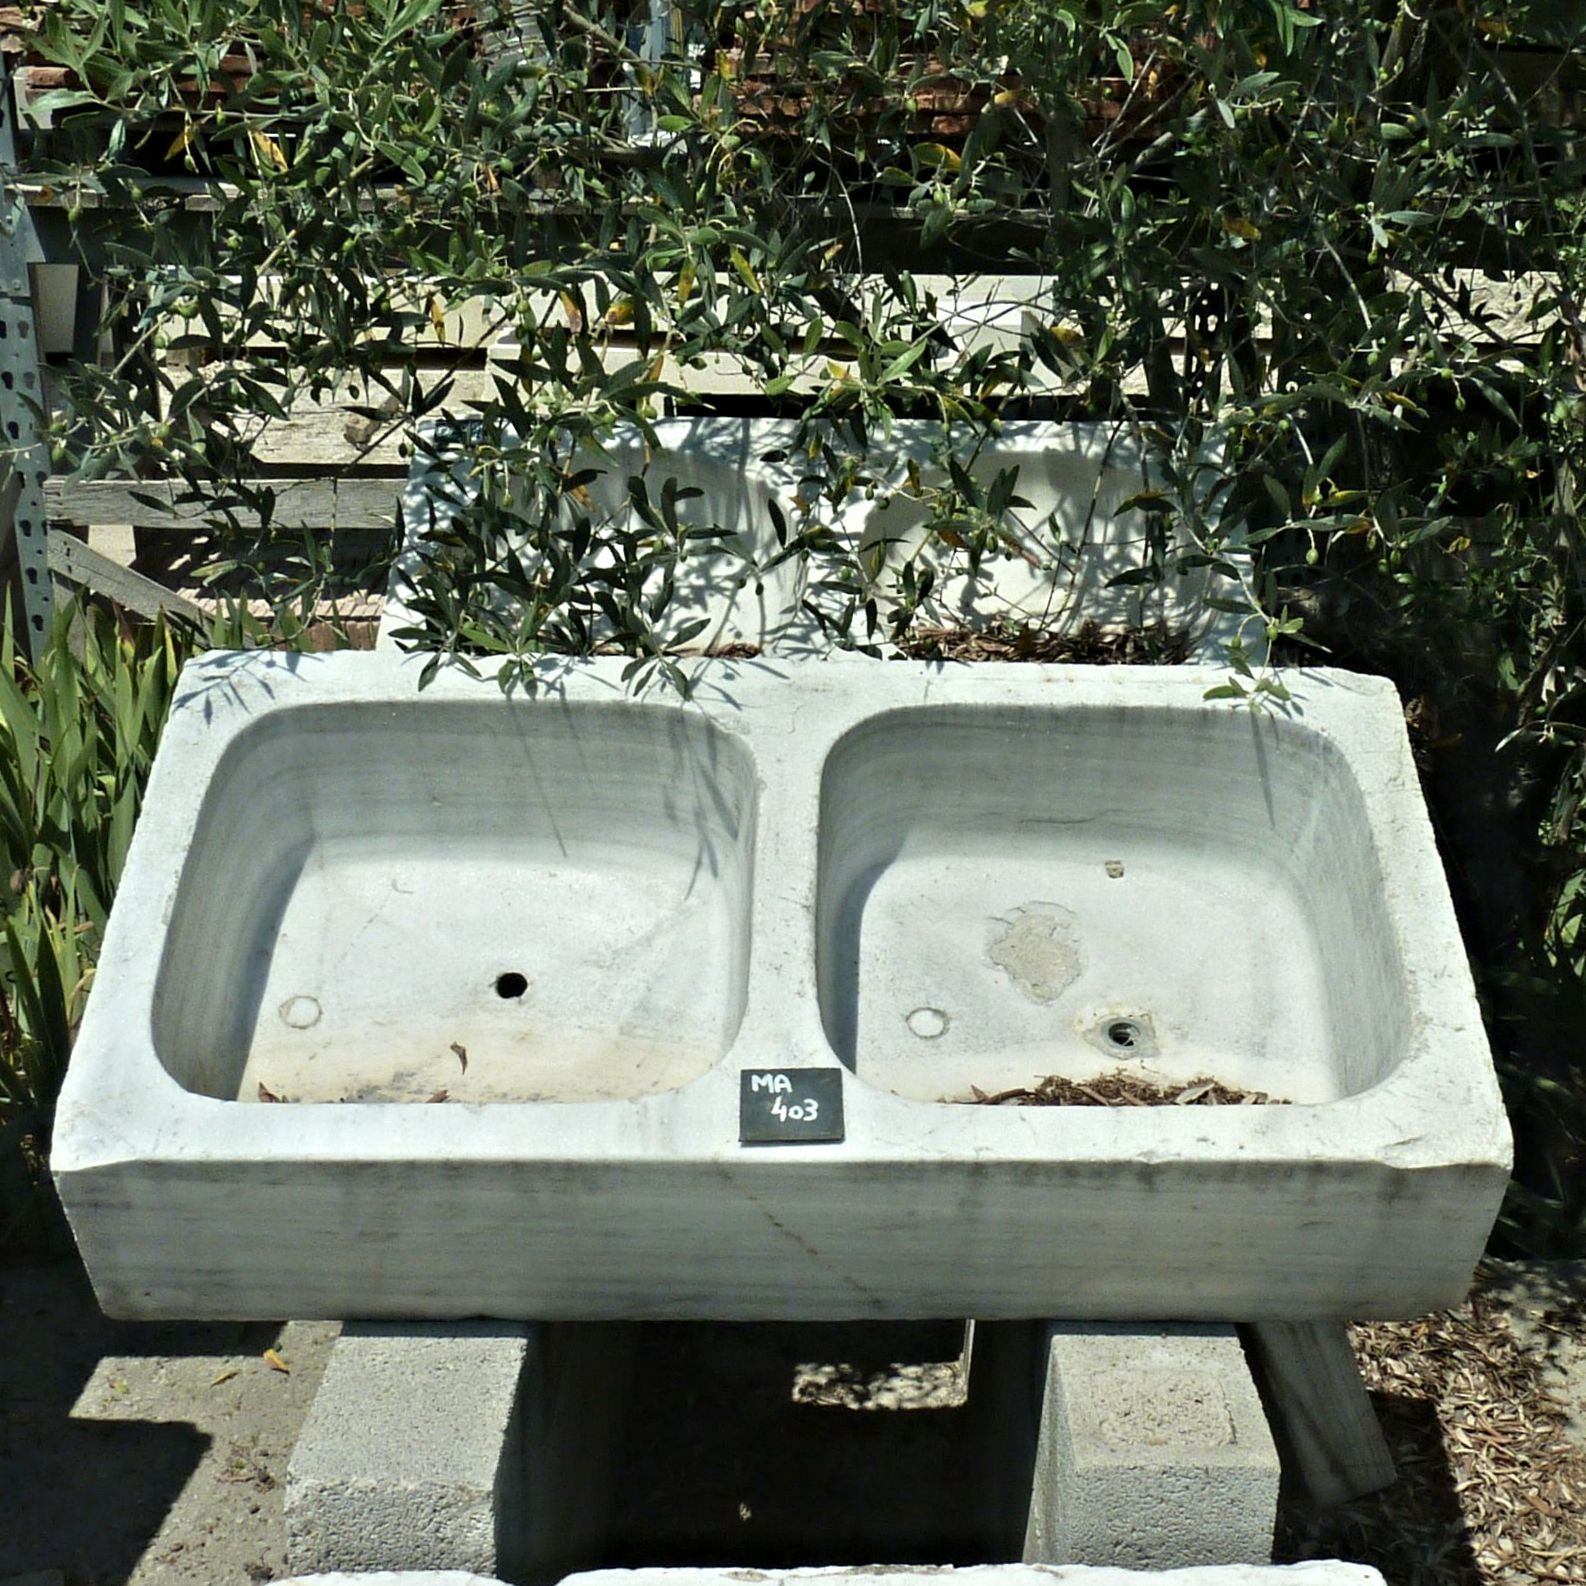 Double basin - sink with 2 separate washbasin.